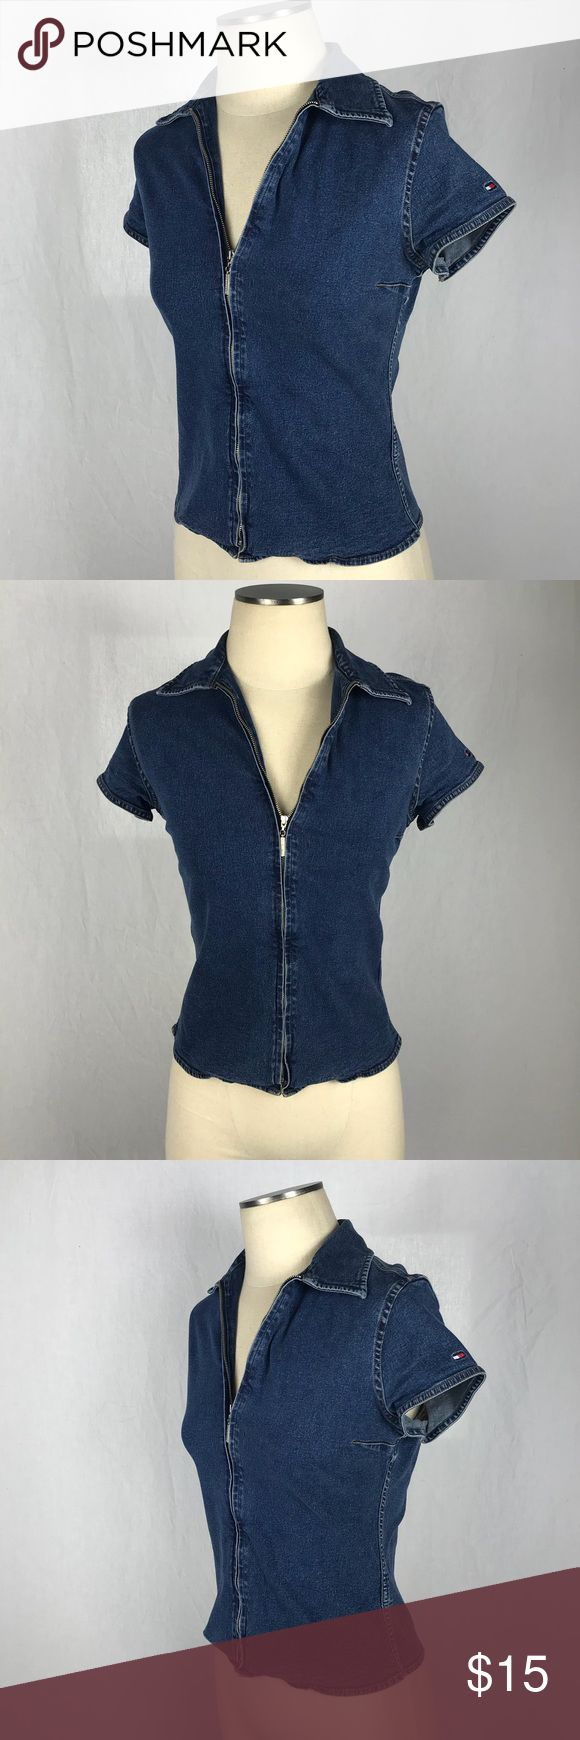 """TOMMY Hilfiger Stretch Denim Zip Up Blouse Cute Tommy Hilfiger zippered denim shirt.  Stretches  Short sleeved Collared Logo on shoulder Excellent condition. Size 2 Chest: 16"""" Top to bottom: 21"""" Lots of stretch! Tommy Hilfiger Tops Blouses"""